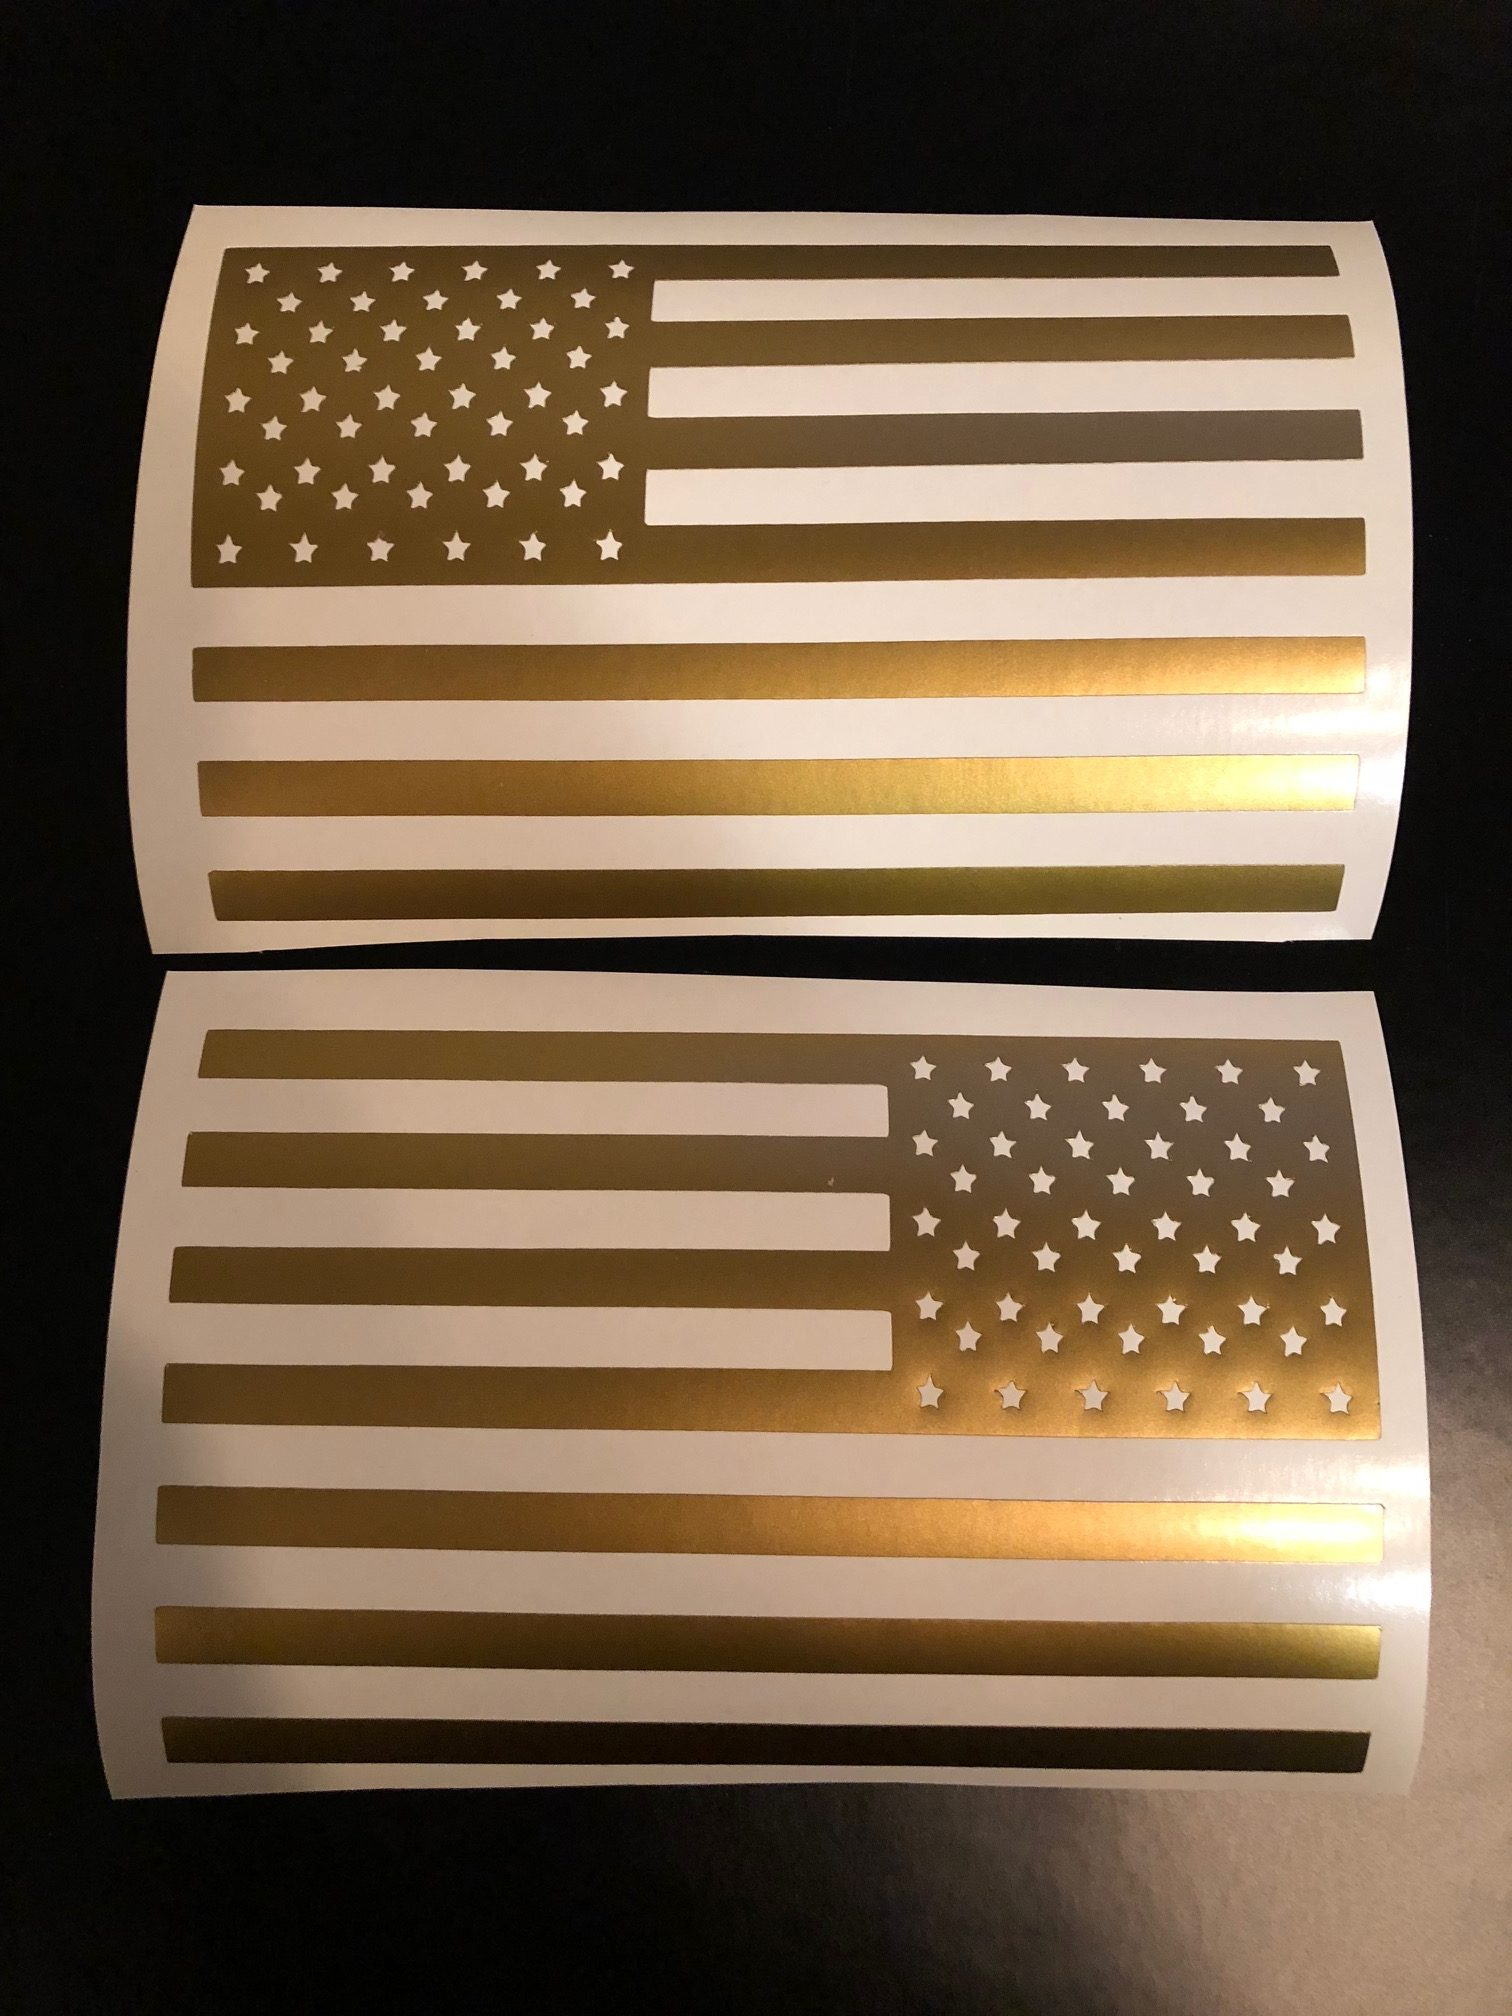 American Flag Battery Fuse Box Decal Baum Customs Us Cover